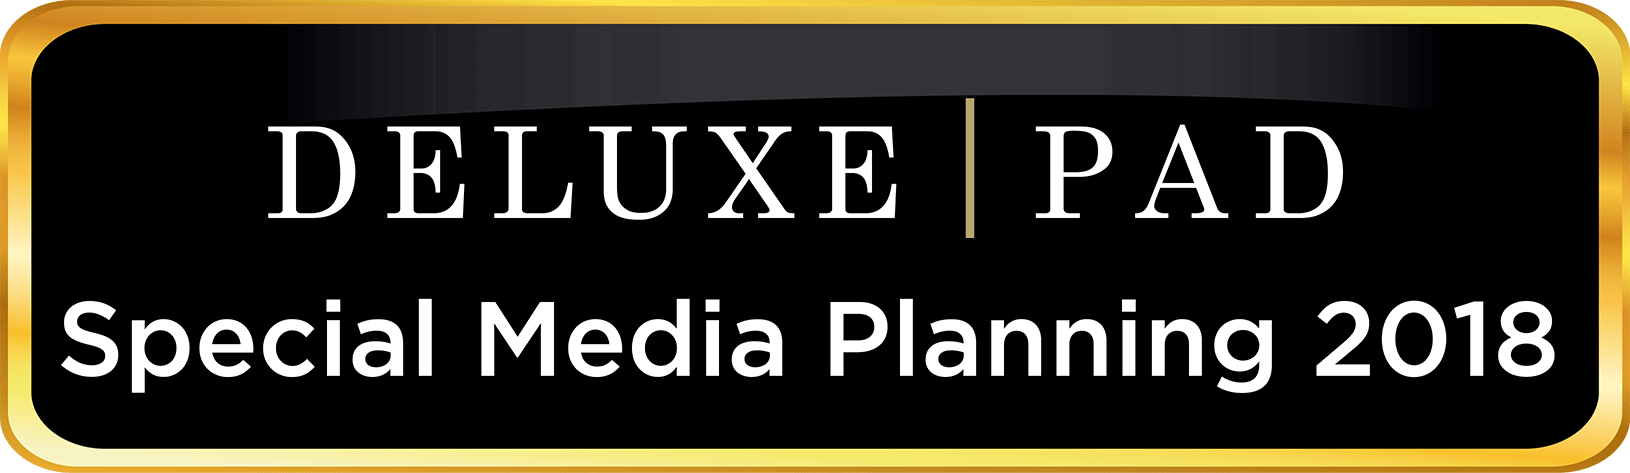 DELUXE|PAD - Special Media Planning 2018